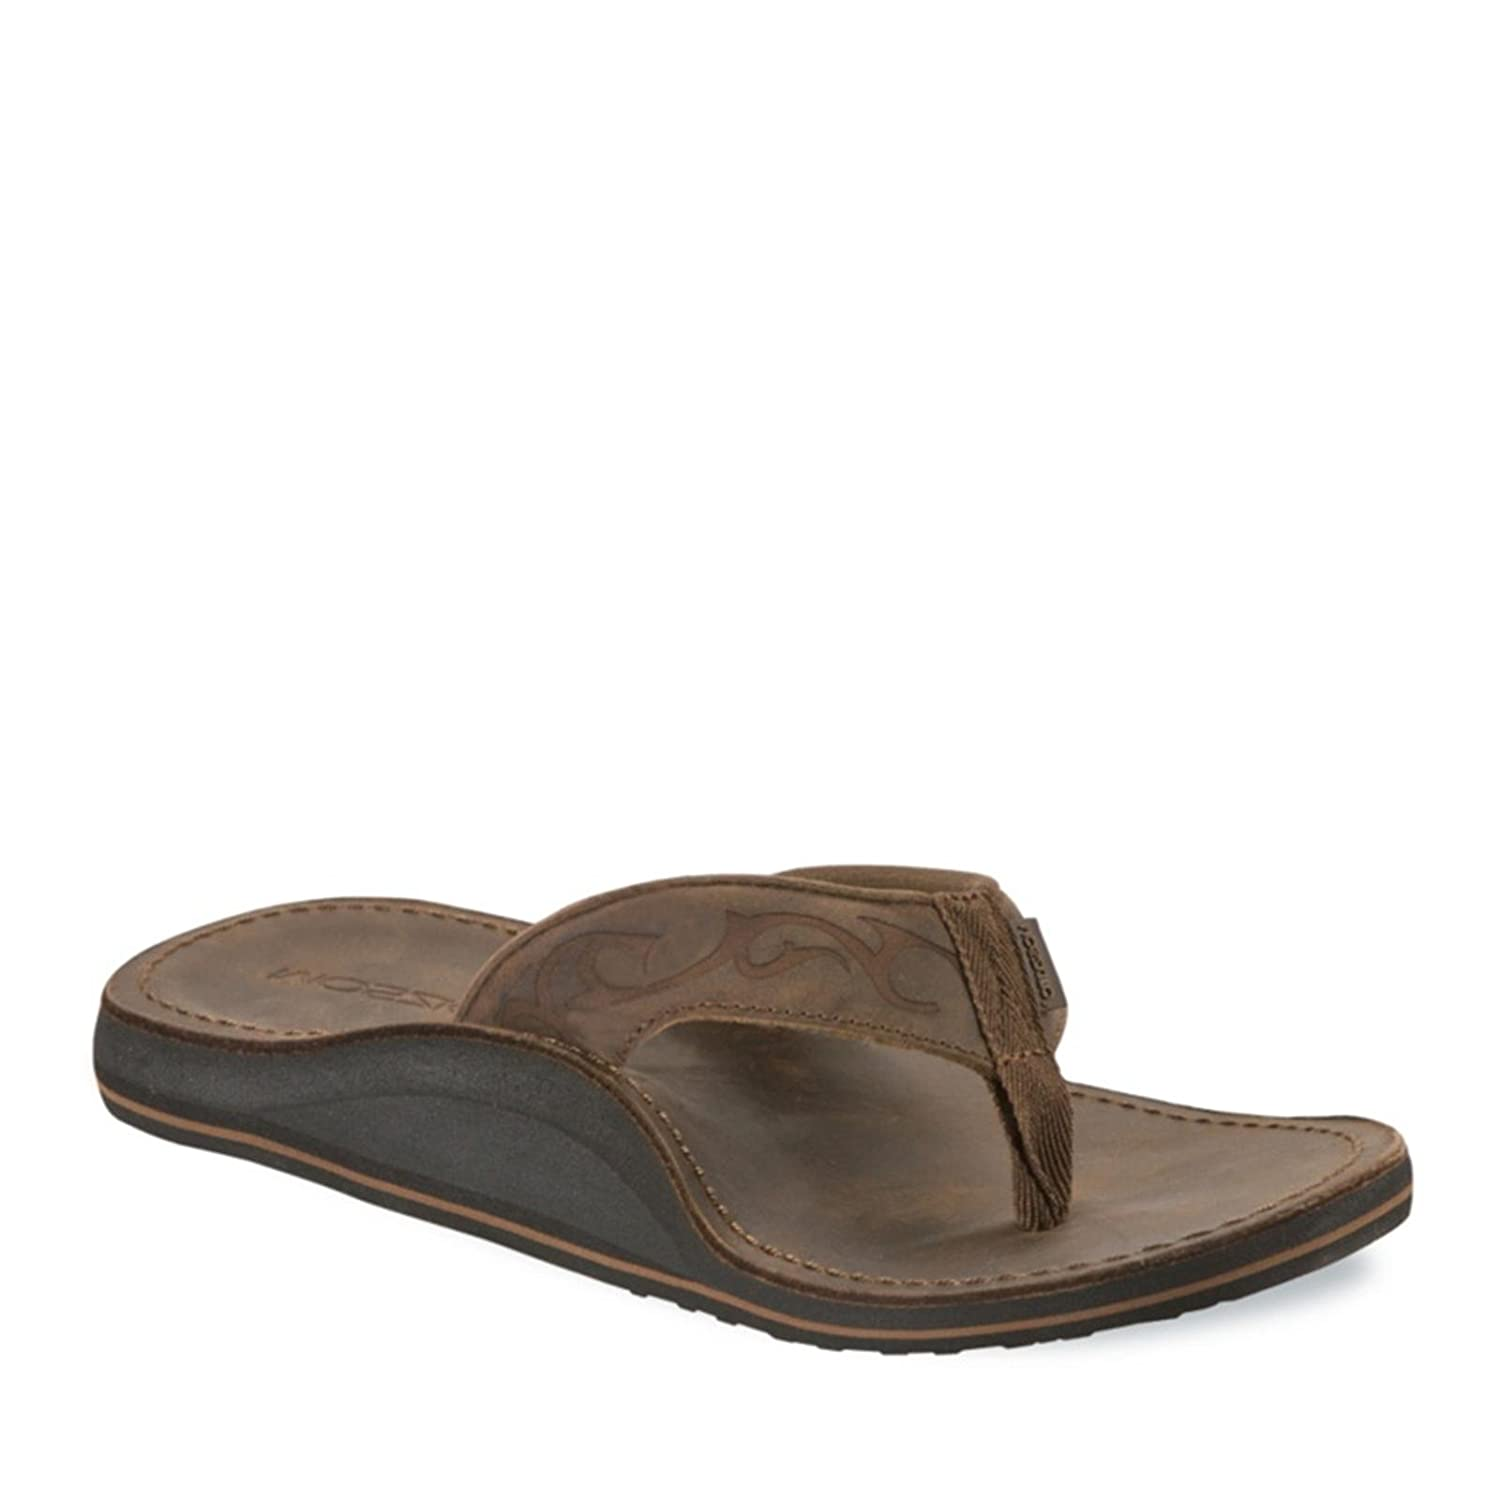 32c4a779a99 Moszkito Archy 400 Brown Mens - Arch Support Flip Flops 12 M US  Amazon.ca   Shoes   Handbags